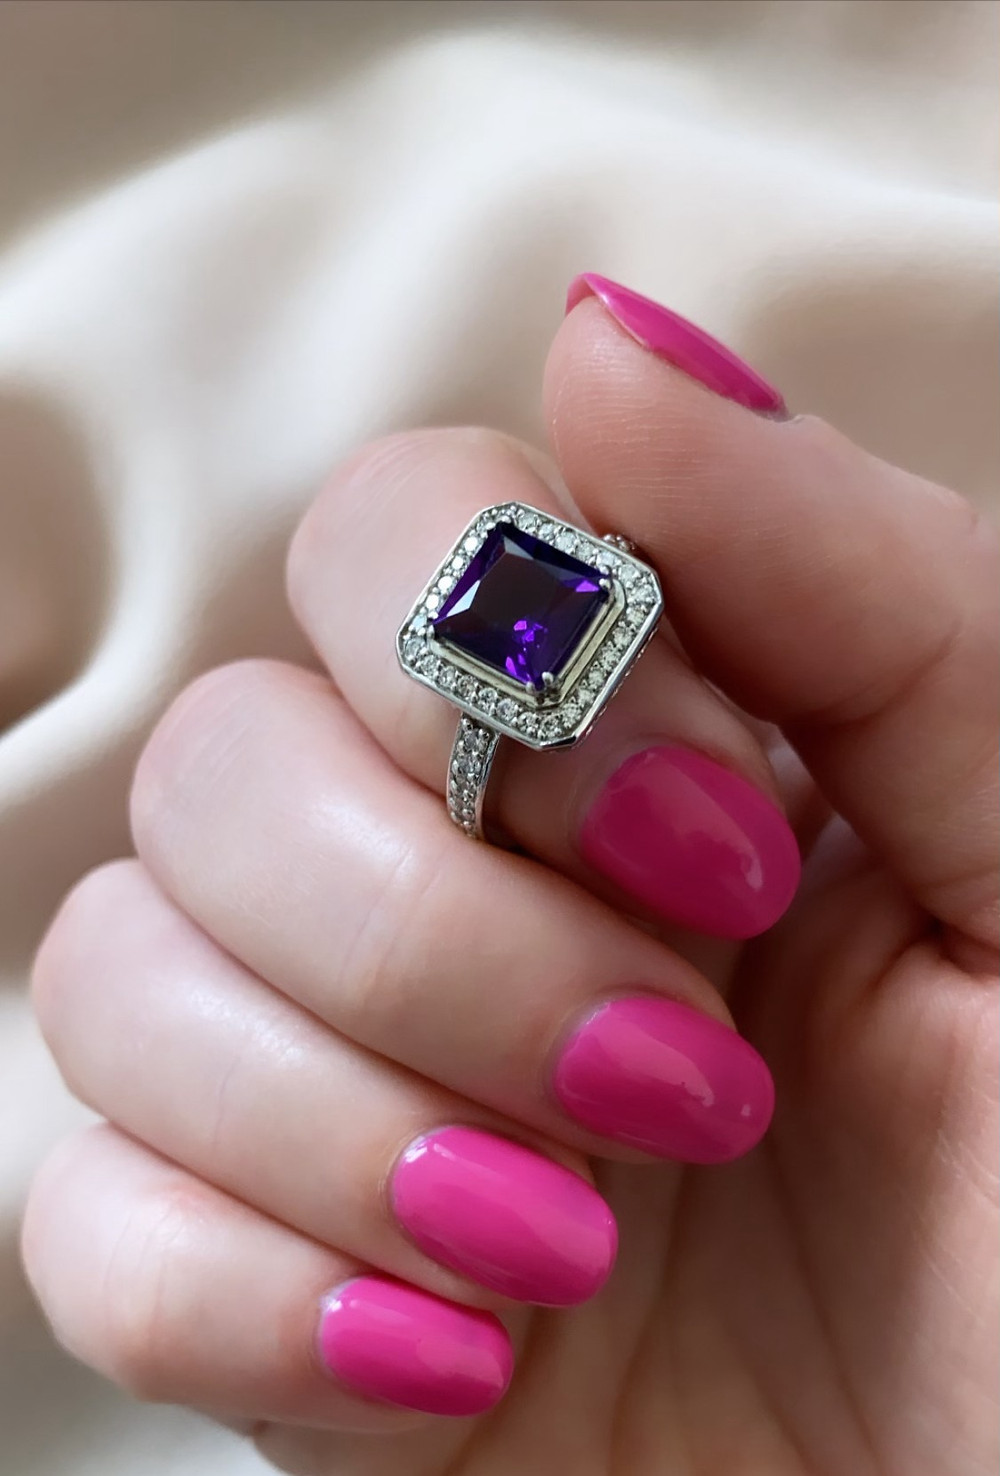 square dark purple amethyst in white gold diamond halo ring held in hand with hot pink nails on white silk background